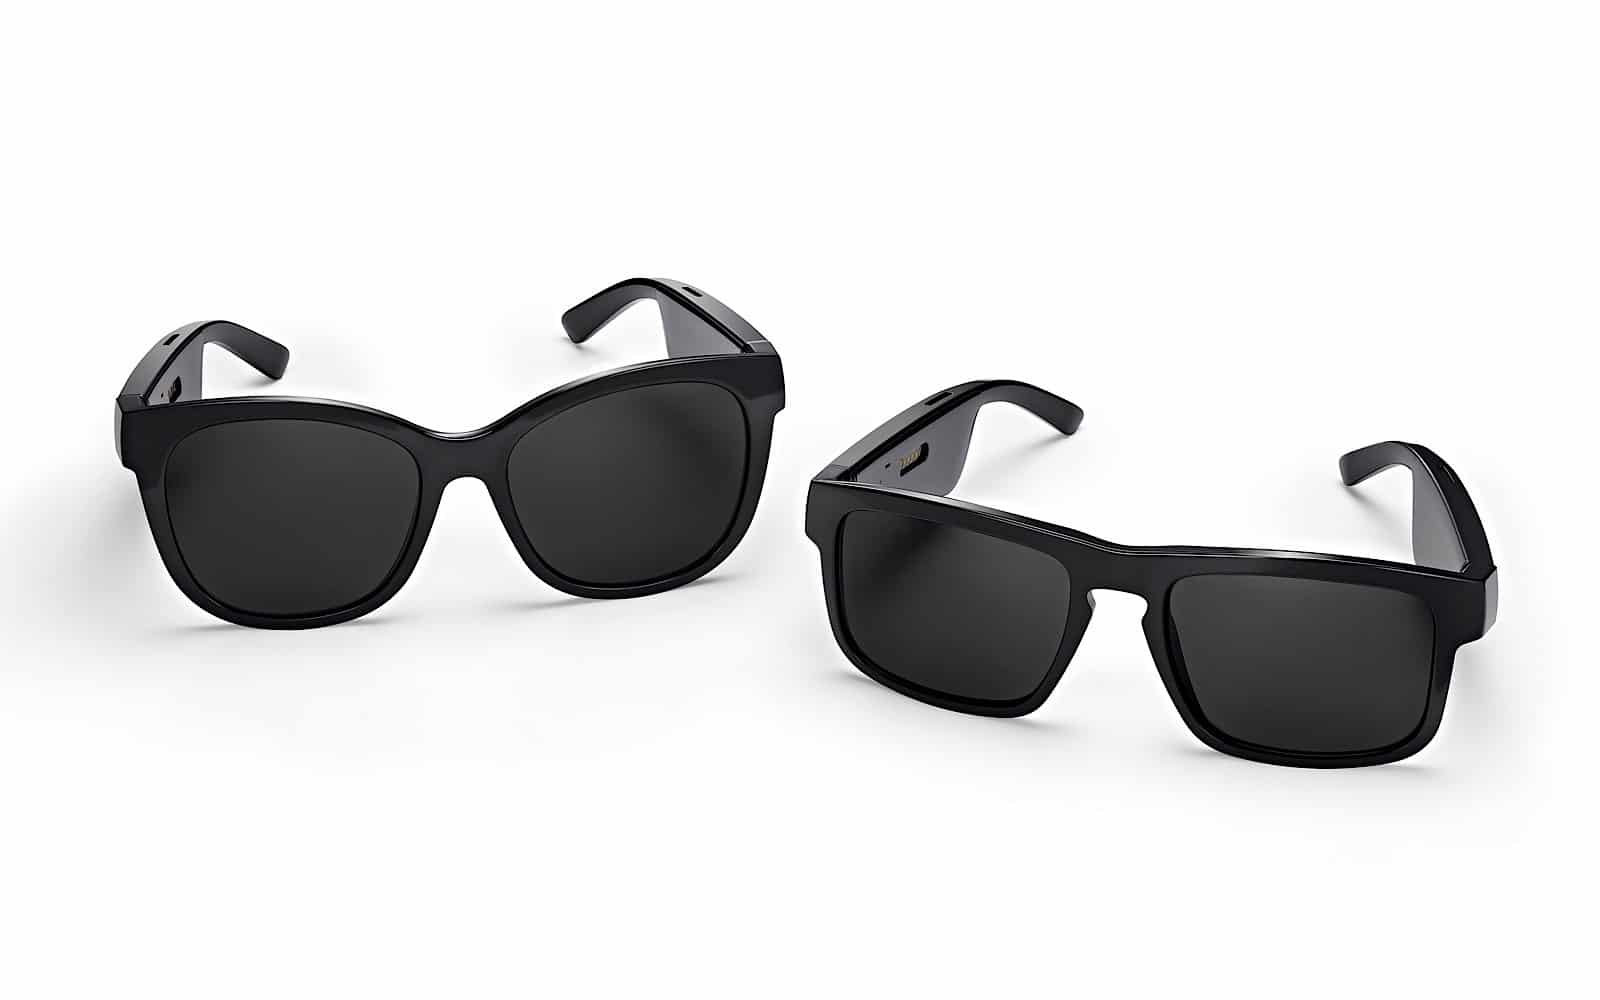 Bose Frames: Bose Tenor and Bose Soprano